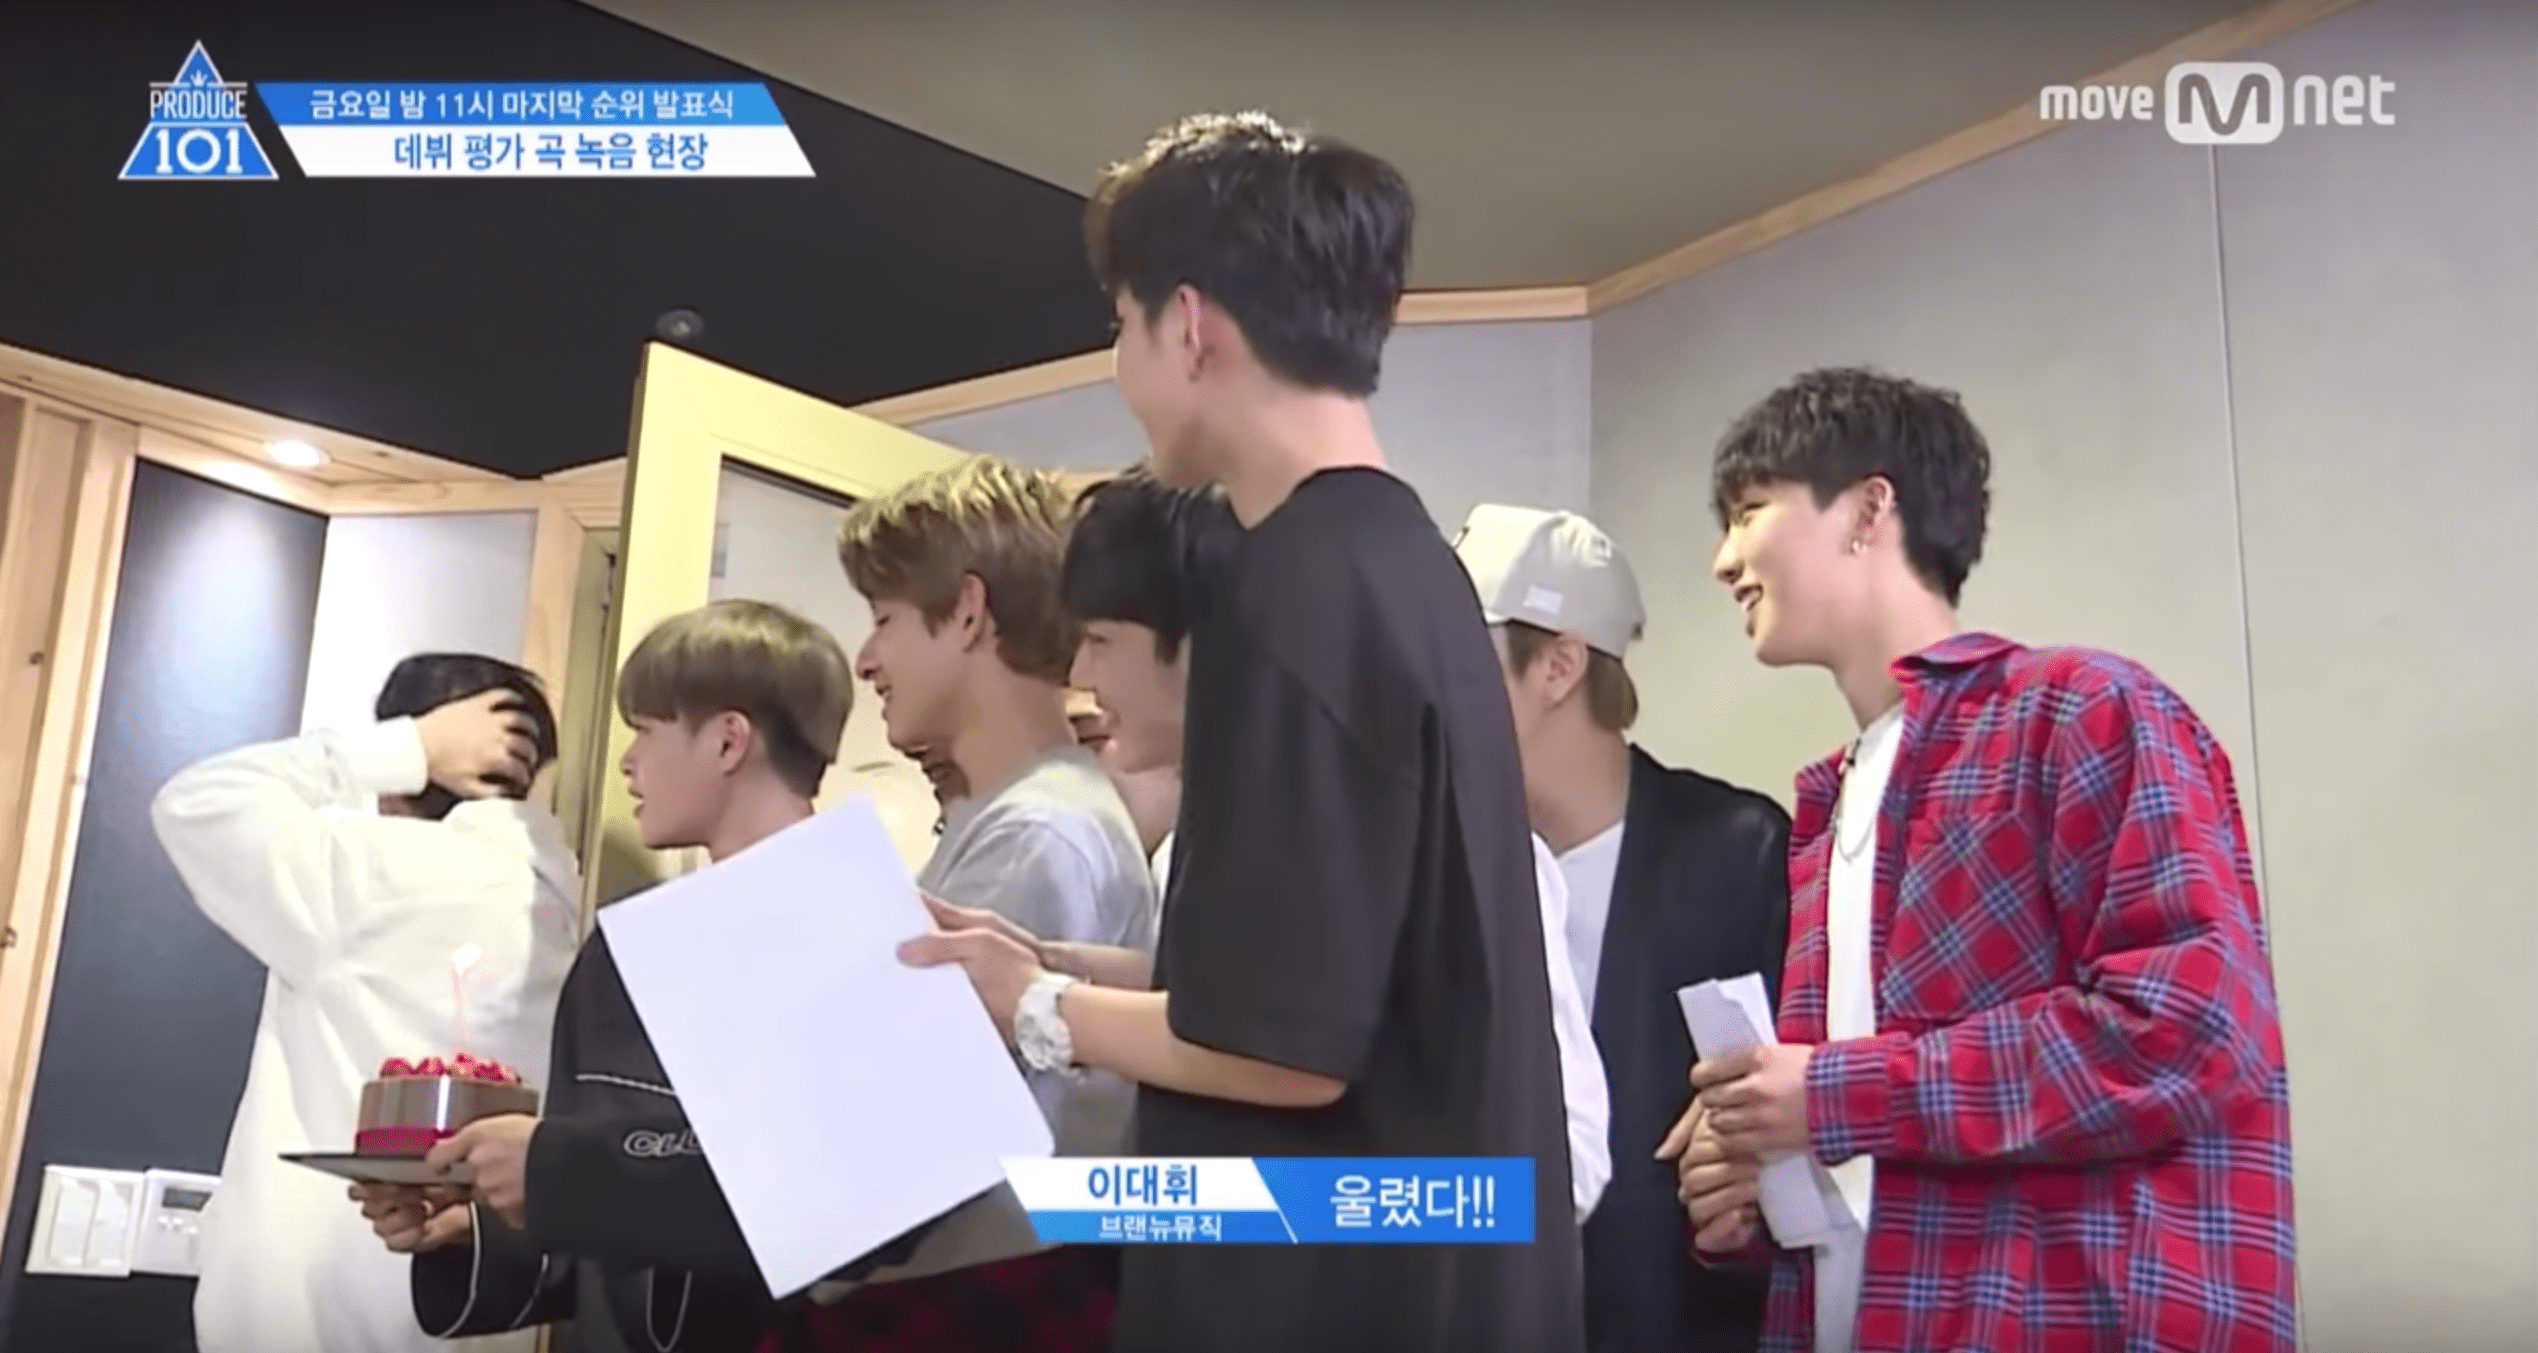 Watch: Produce 101 Season 2 Trainees Prepare Something For Kim Jong Hyuns Birthday During Recording Session